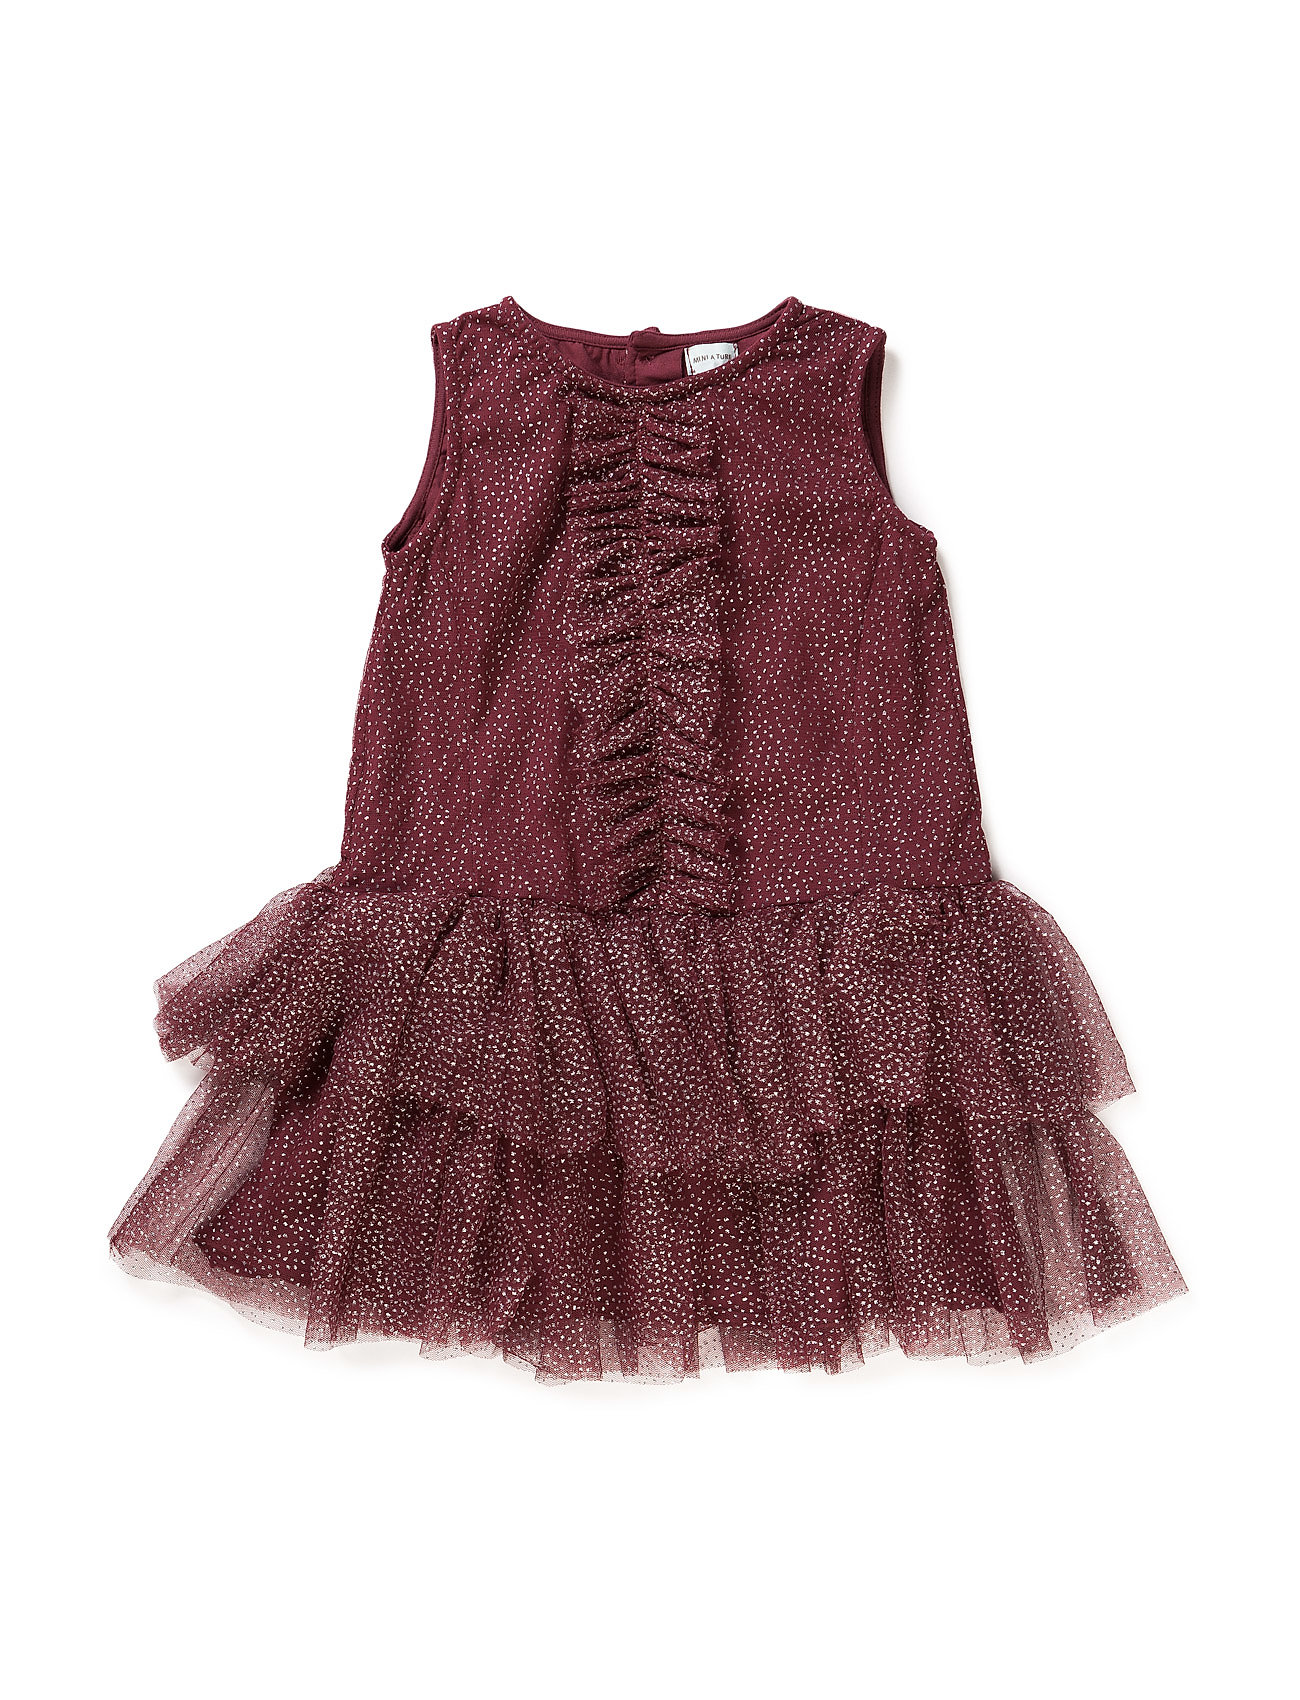 Mini A Ture Melischa, MK Dress - FIG RED